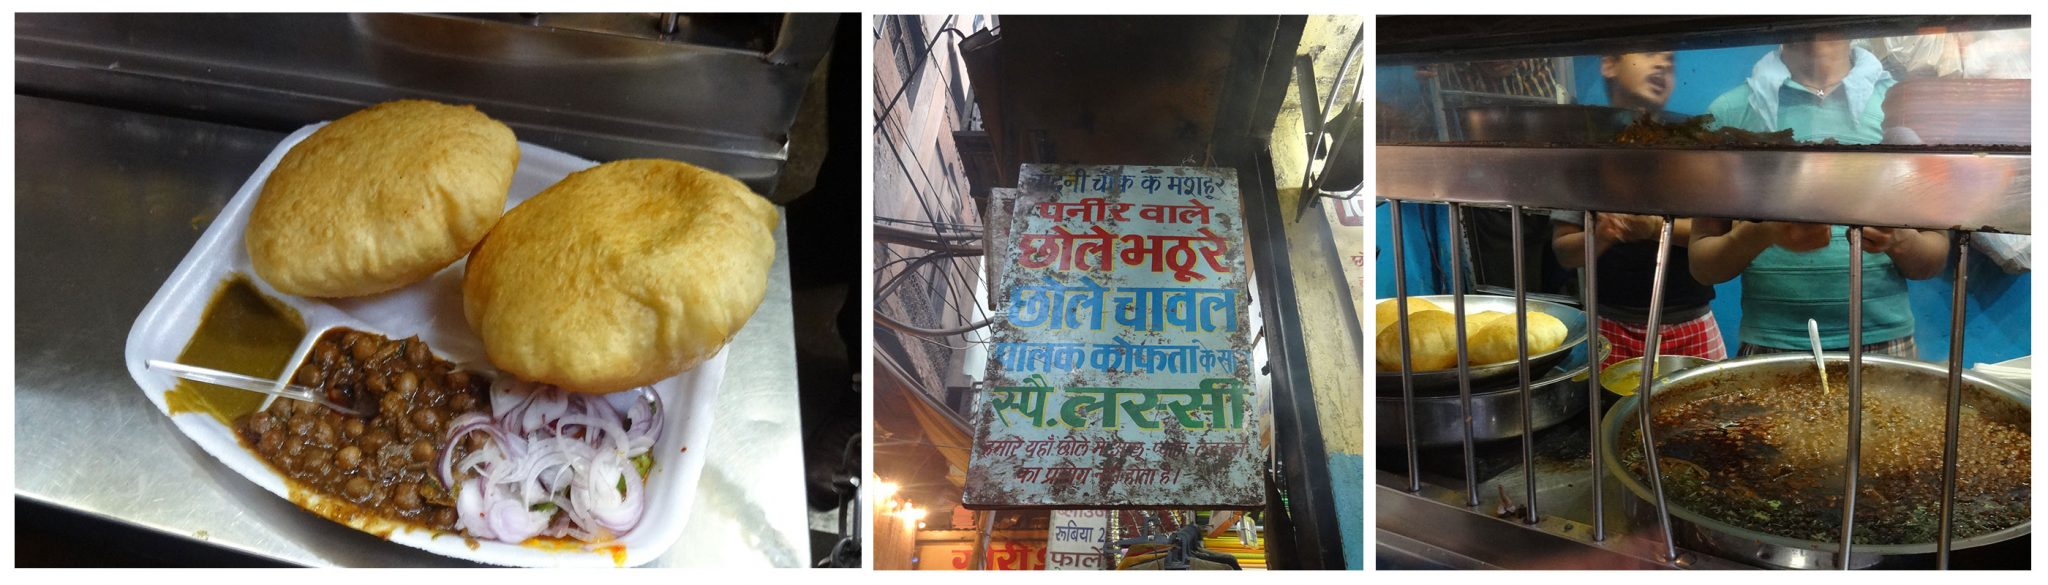 Chhole Bhatoore Delhi Food walk in Chandni Chowk